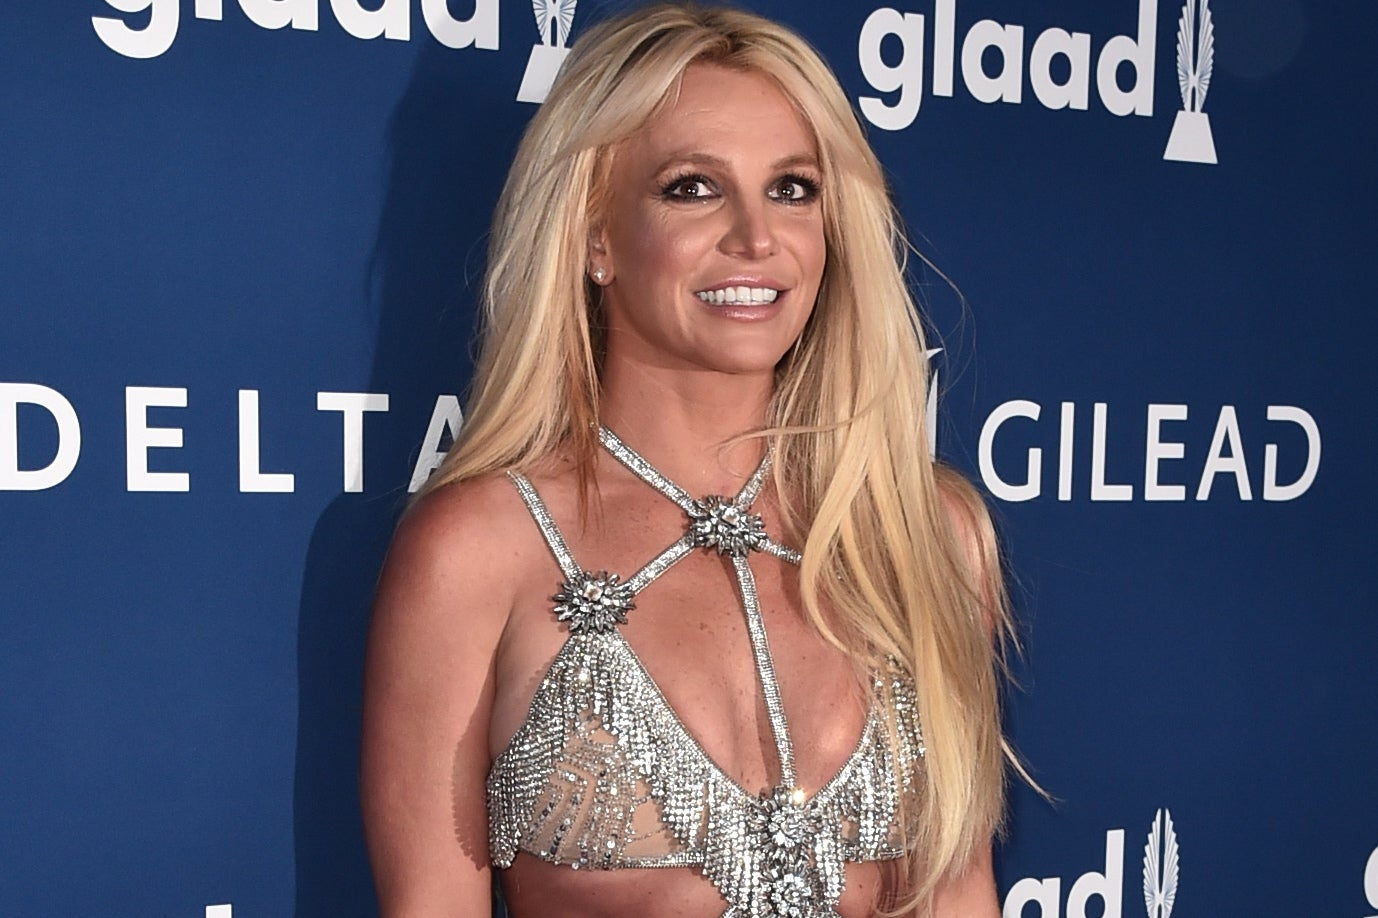 Britney Spears faces backlash over photo of $6k snakeskin Louboutin …